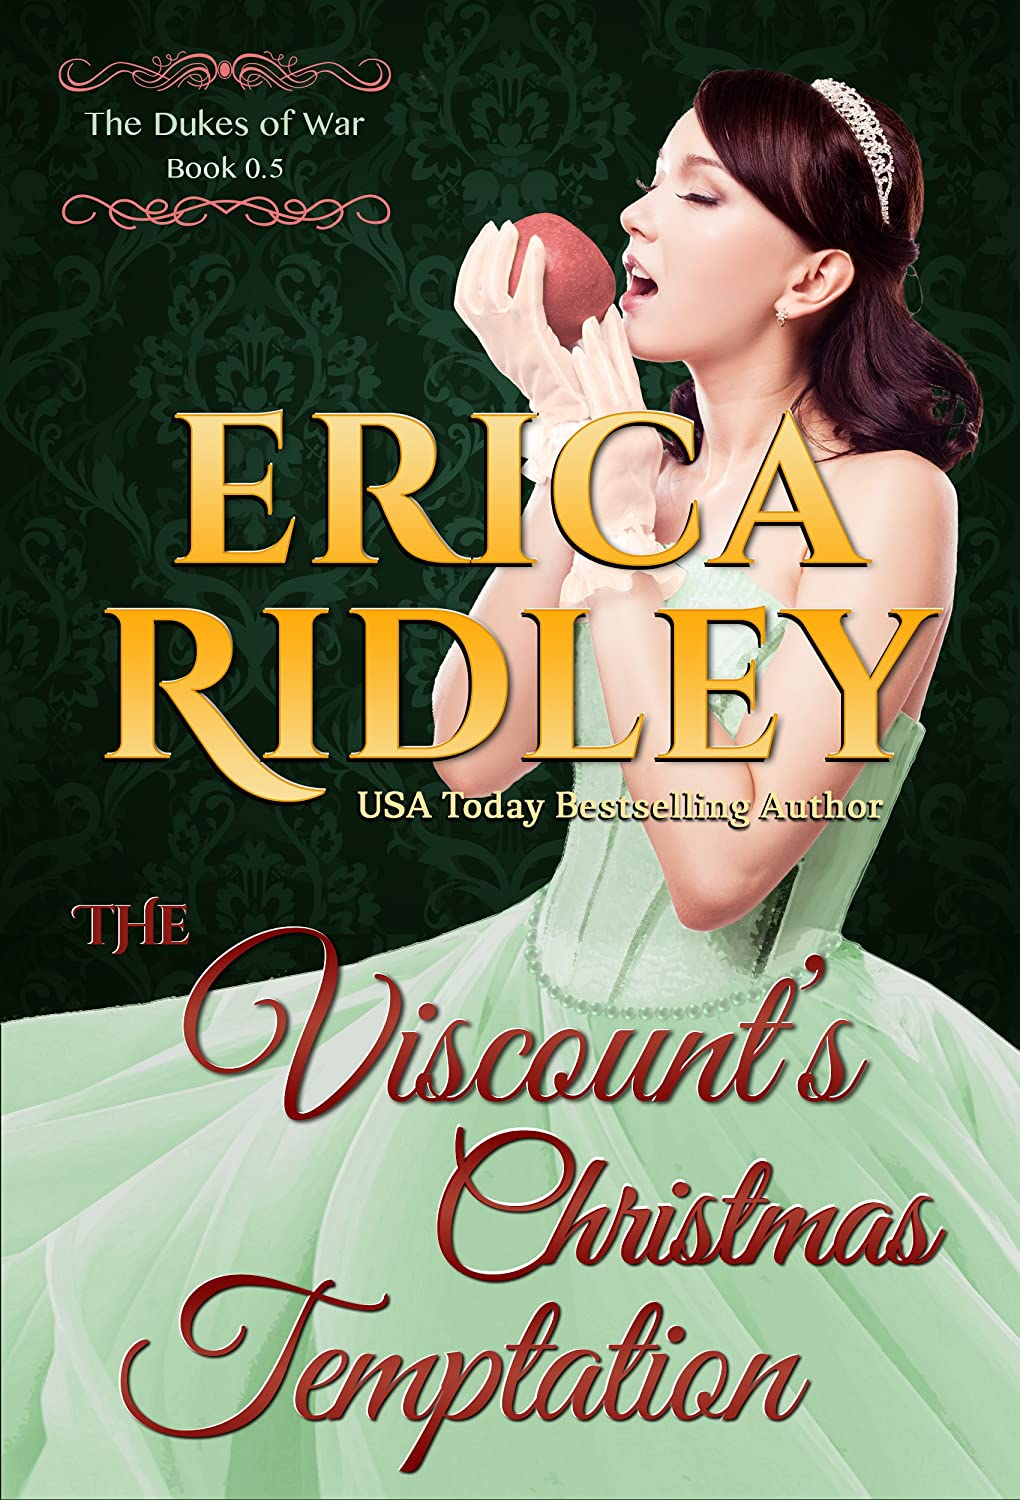 The Viscount's Christmas Temptation (Dukes of War Book 0) by Erica Ridley